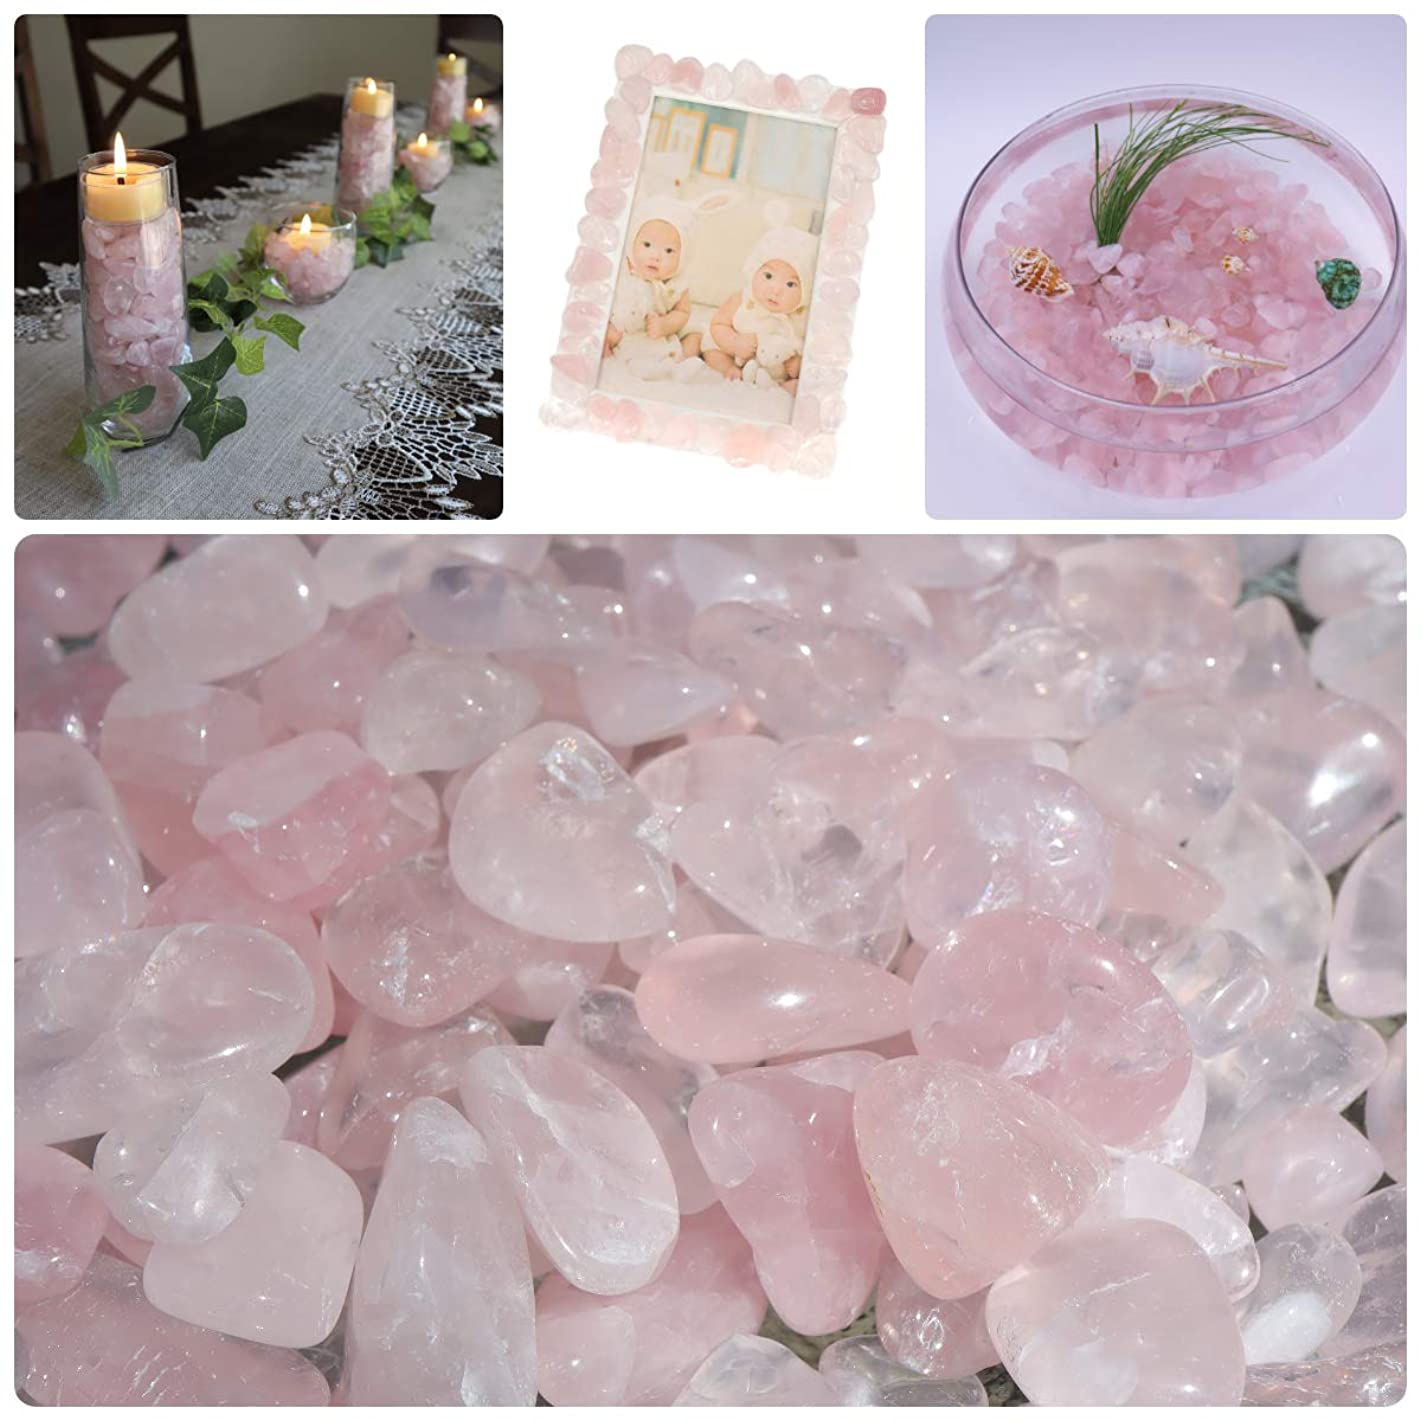 NatureWonders Rose Quartz Crystal (Icy Pink) Tumbled Chips (1 Cup) All Natural Crystals for Vase Filler, Candle Holder Fillers, Table Decorations, Centerpieces, Aquarium, Art - Polished Surface